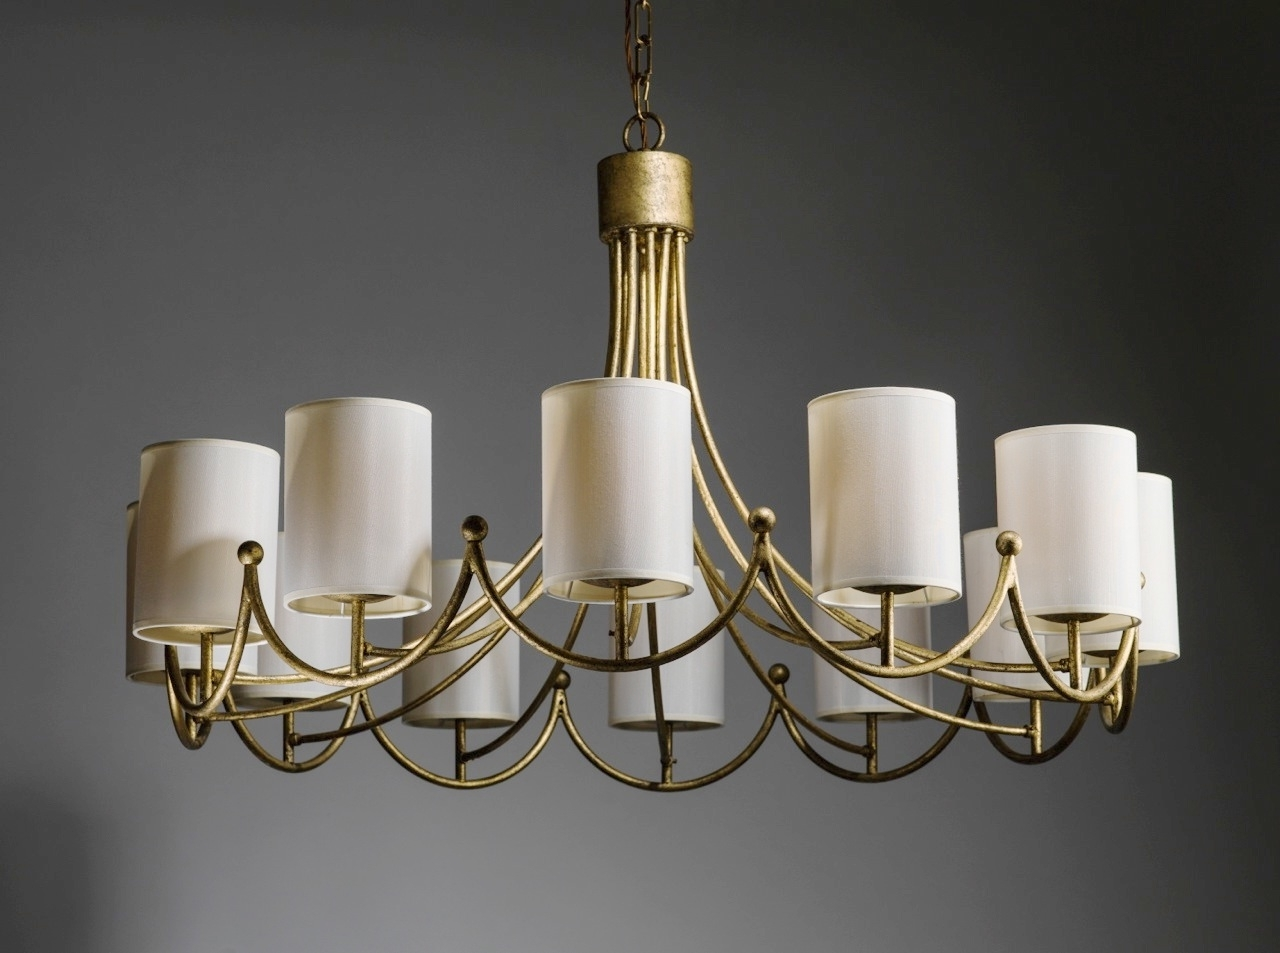 Royere Inspired Wrought Iron 12 Light Chandelier In Distressed Gold In Recent Cream Gold Chandelier (View 9 of 20)